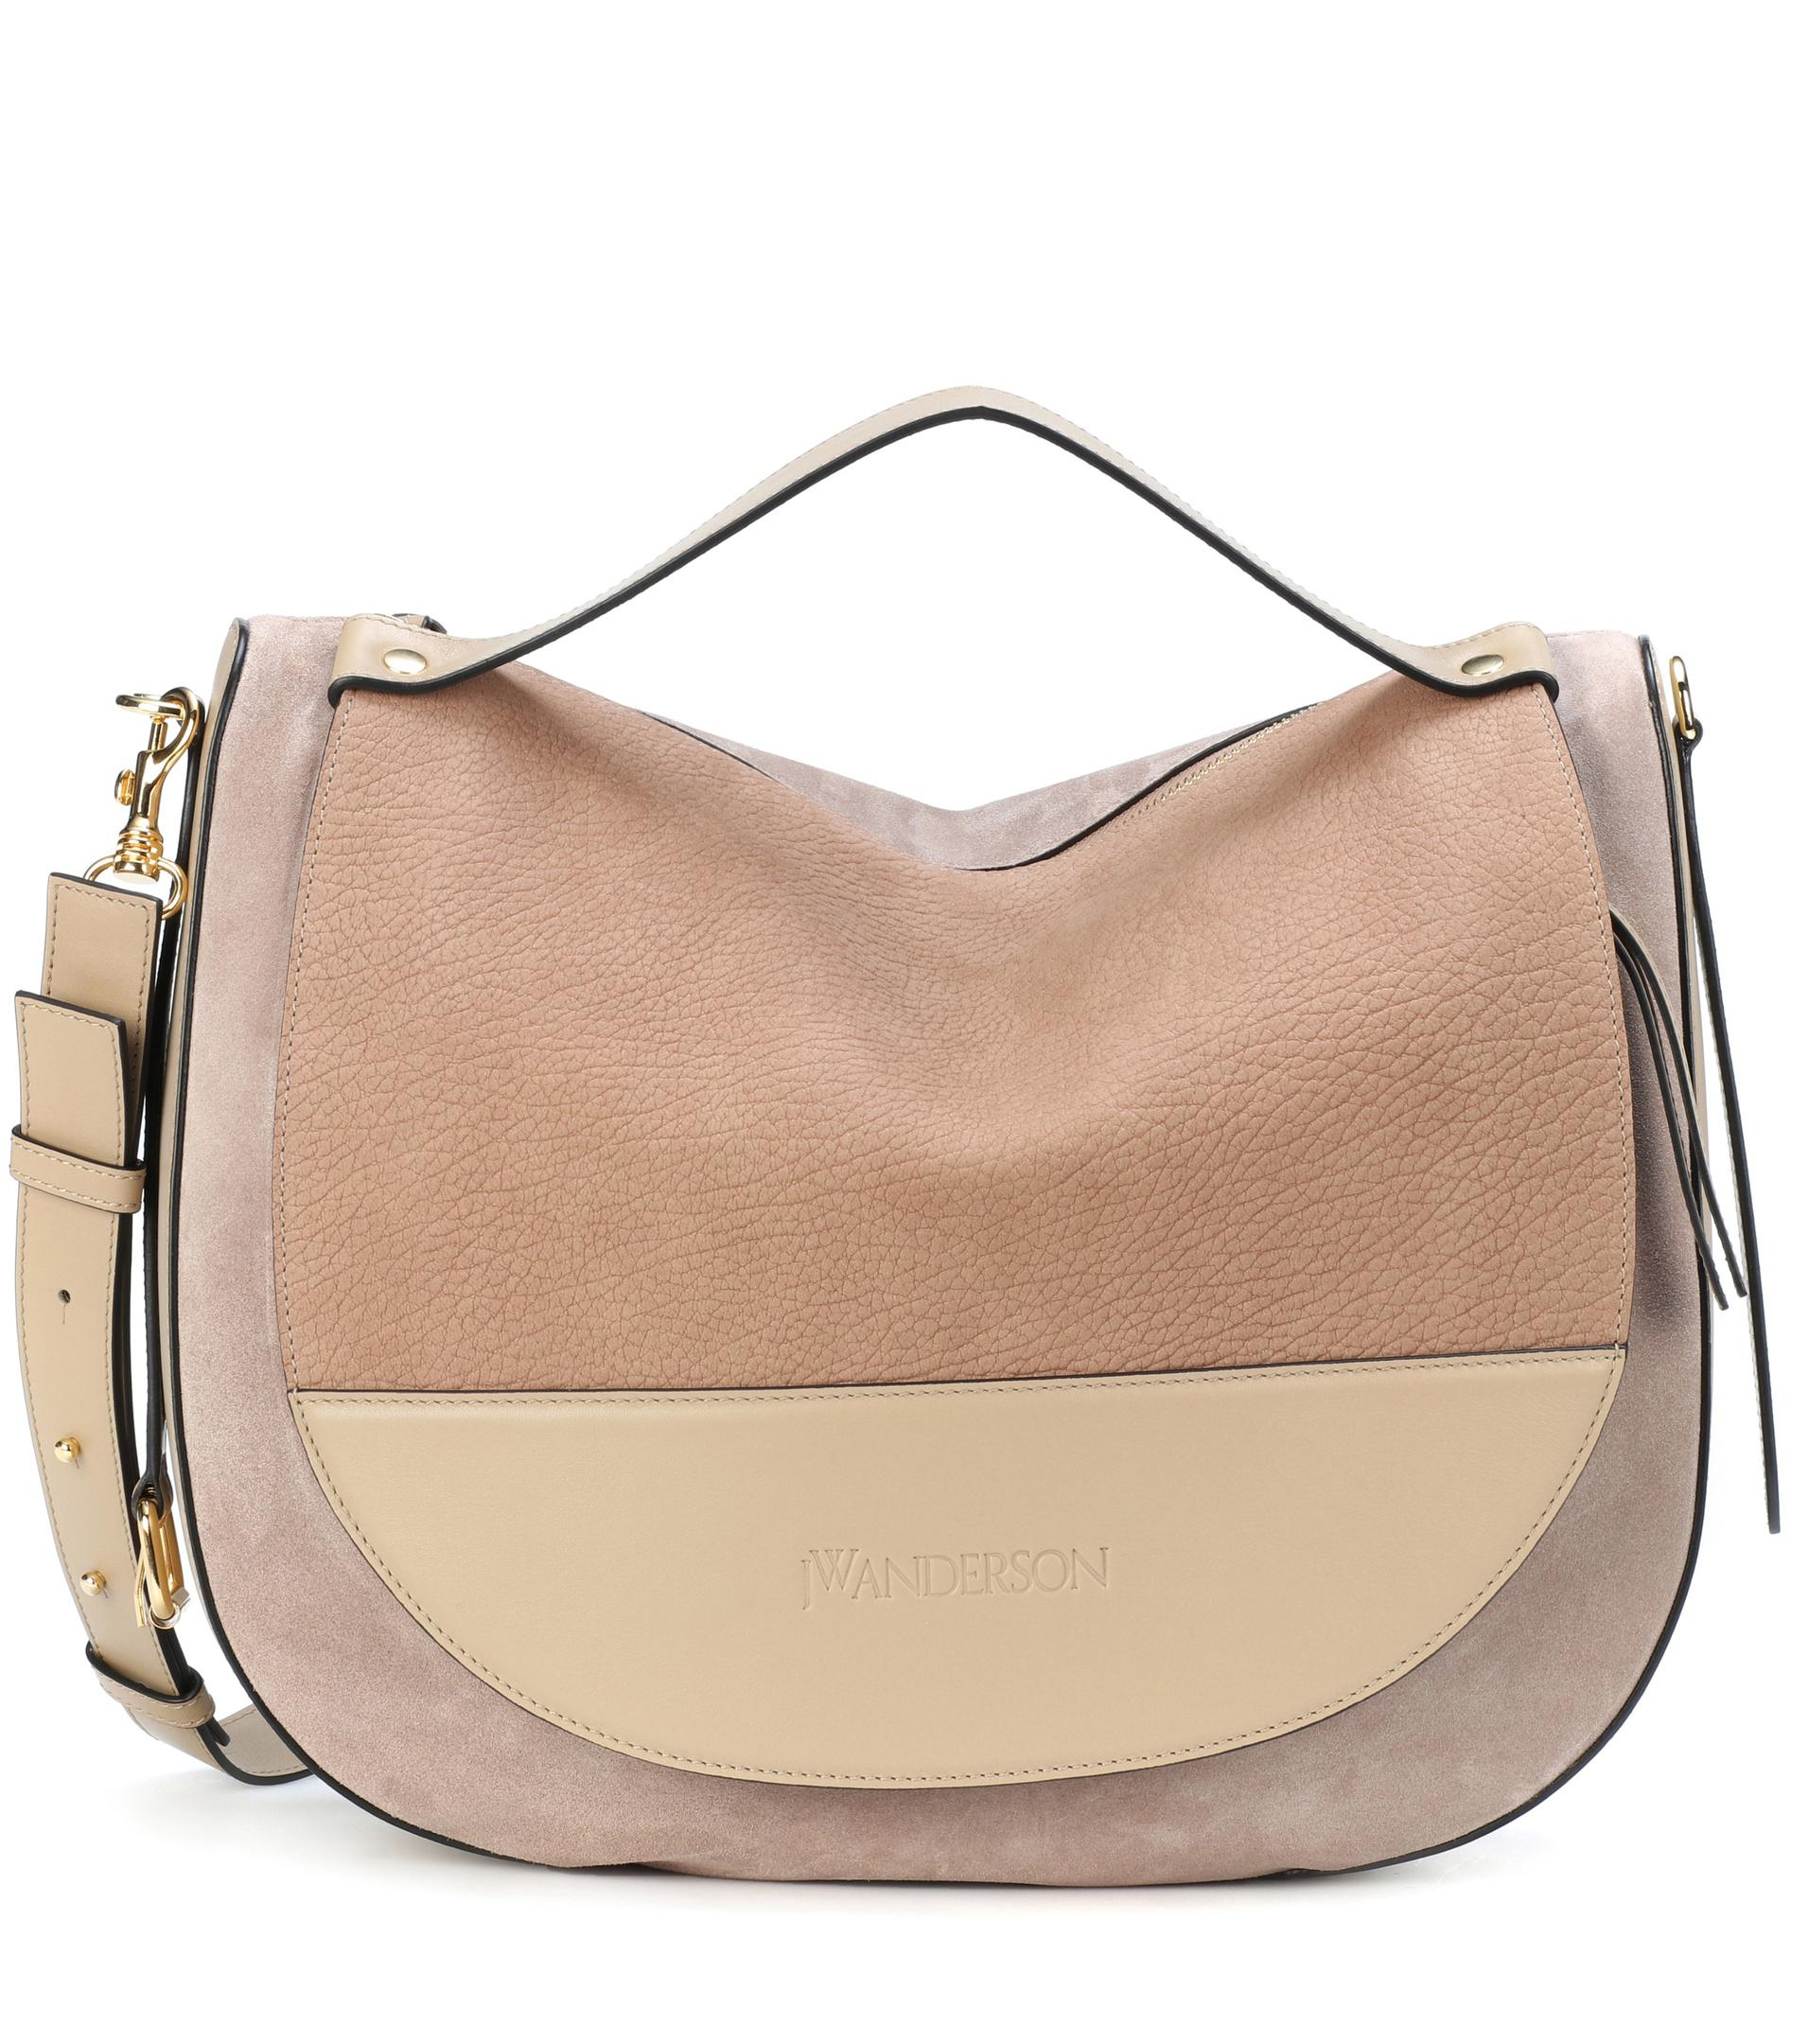 JW Anderson Moon Suede And Leather Shoulder Bag in Natural - Lyst 646f4a6b78aea